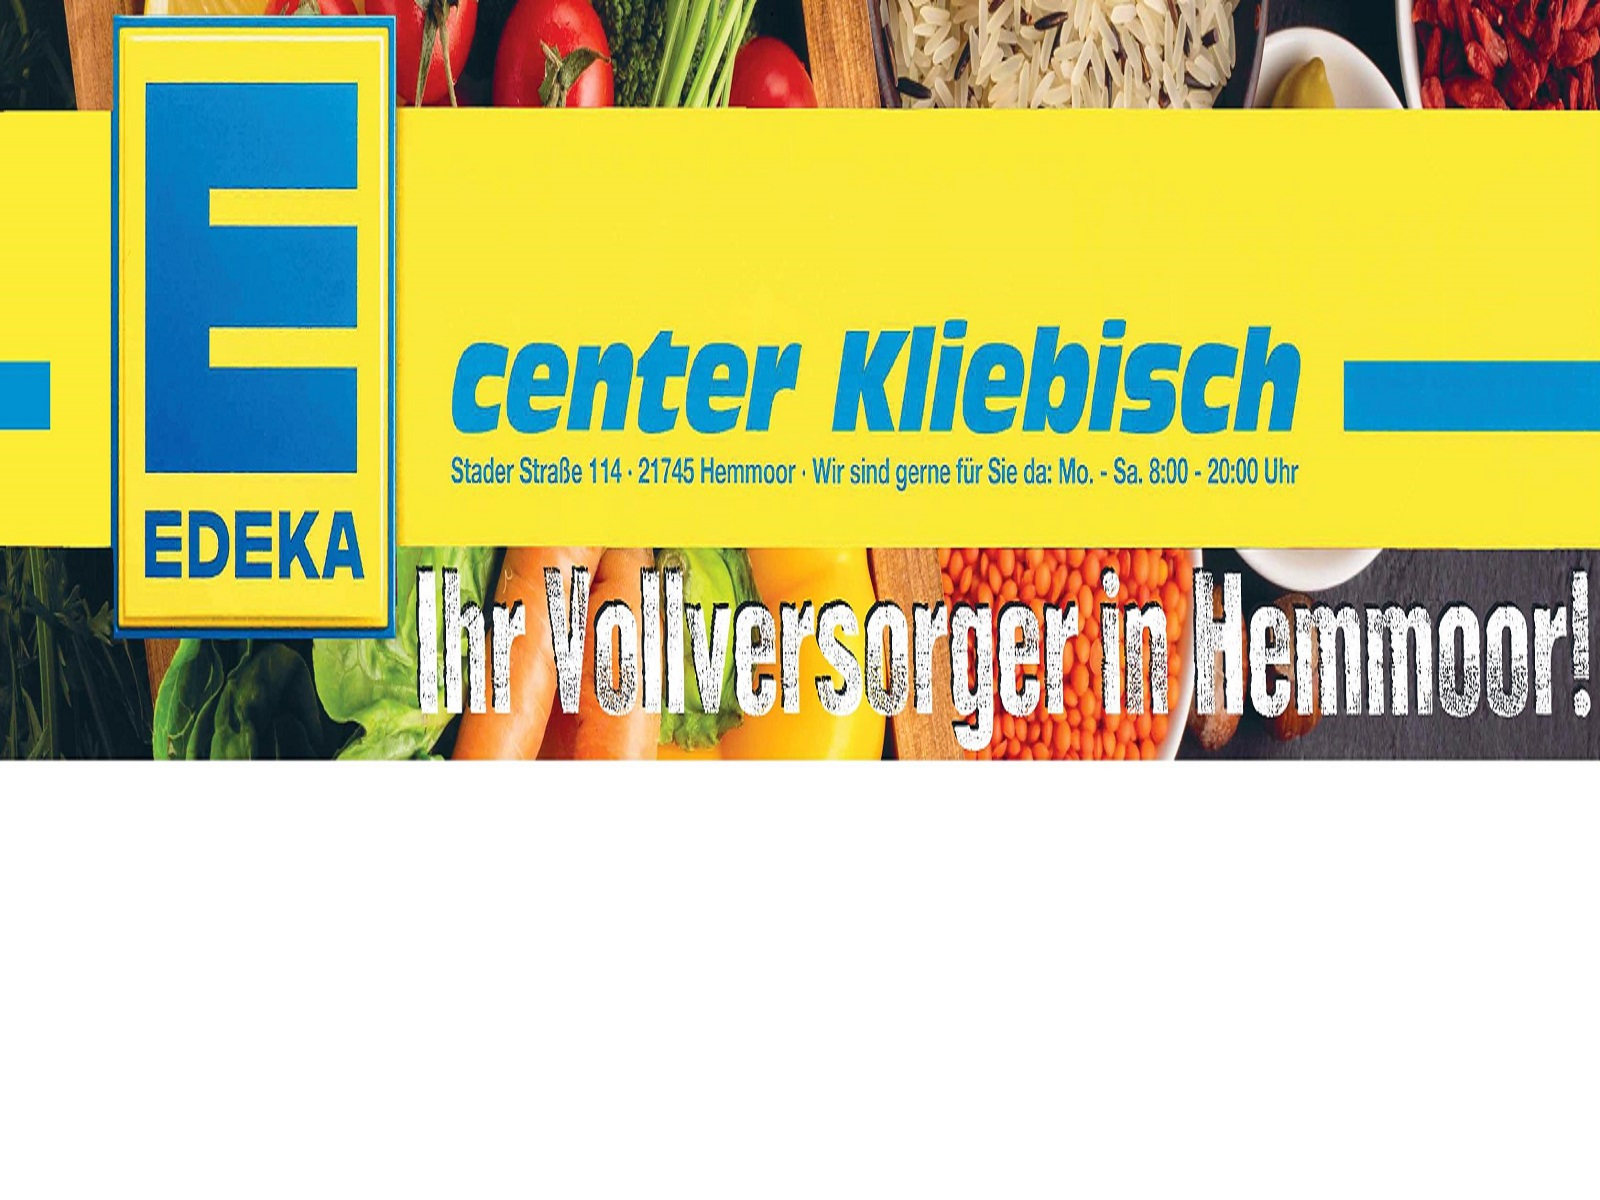 EDEKA Center Kliebisch